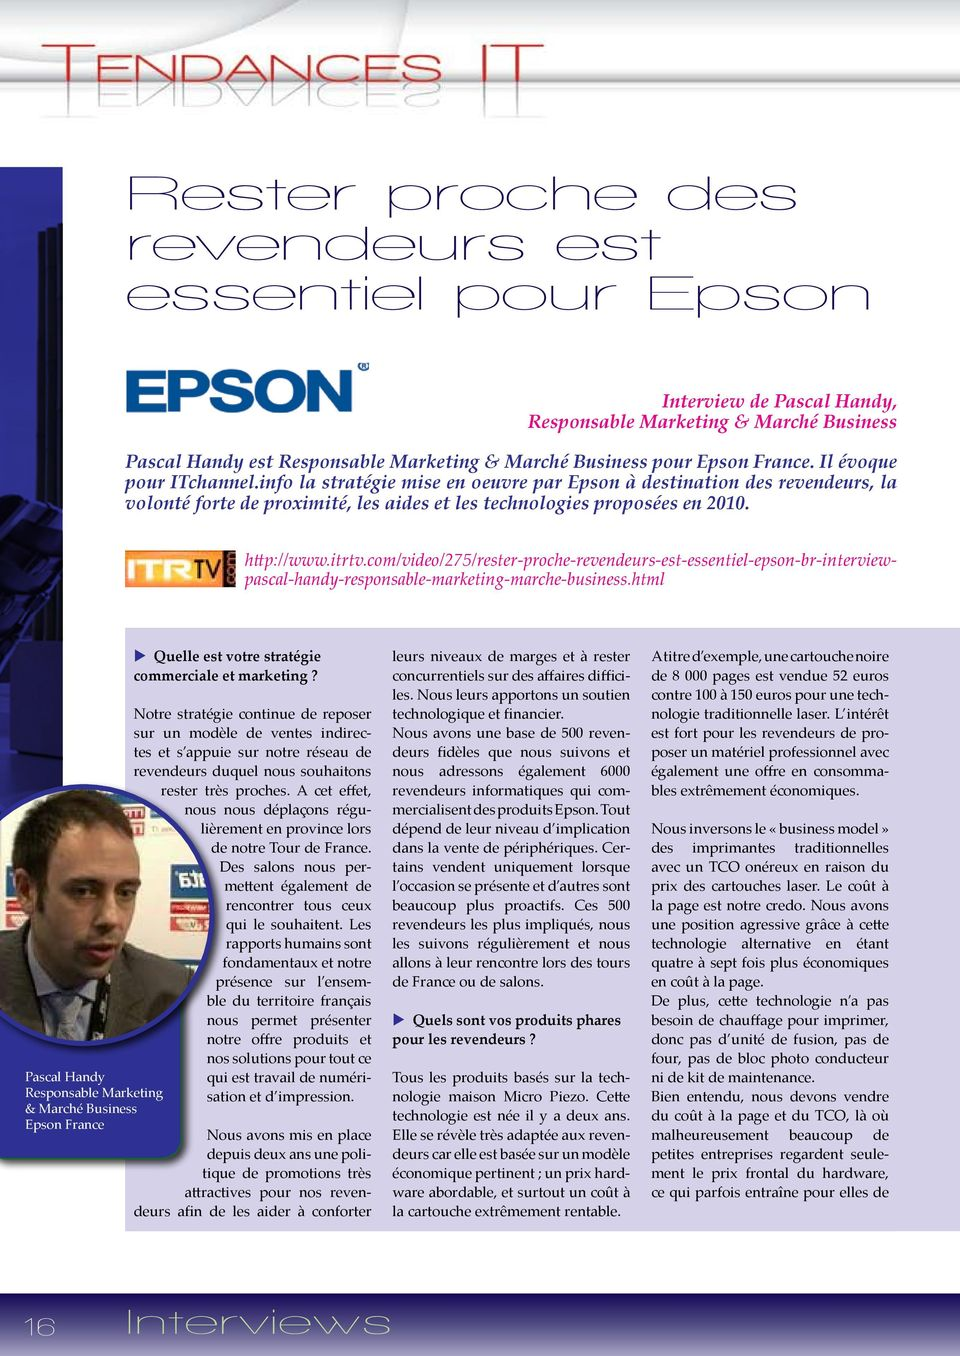 com/video/275/rester-proche-revendeurs-est-essentiel-epson-br-interviewpascal-handy-responsable-marketing-marche-business.